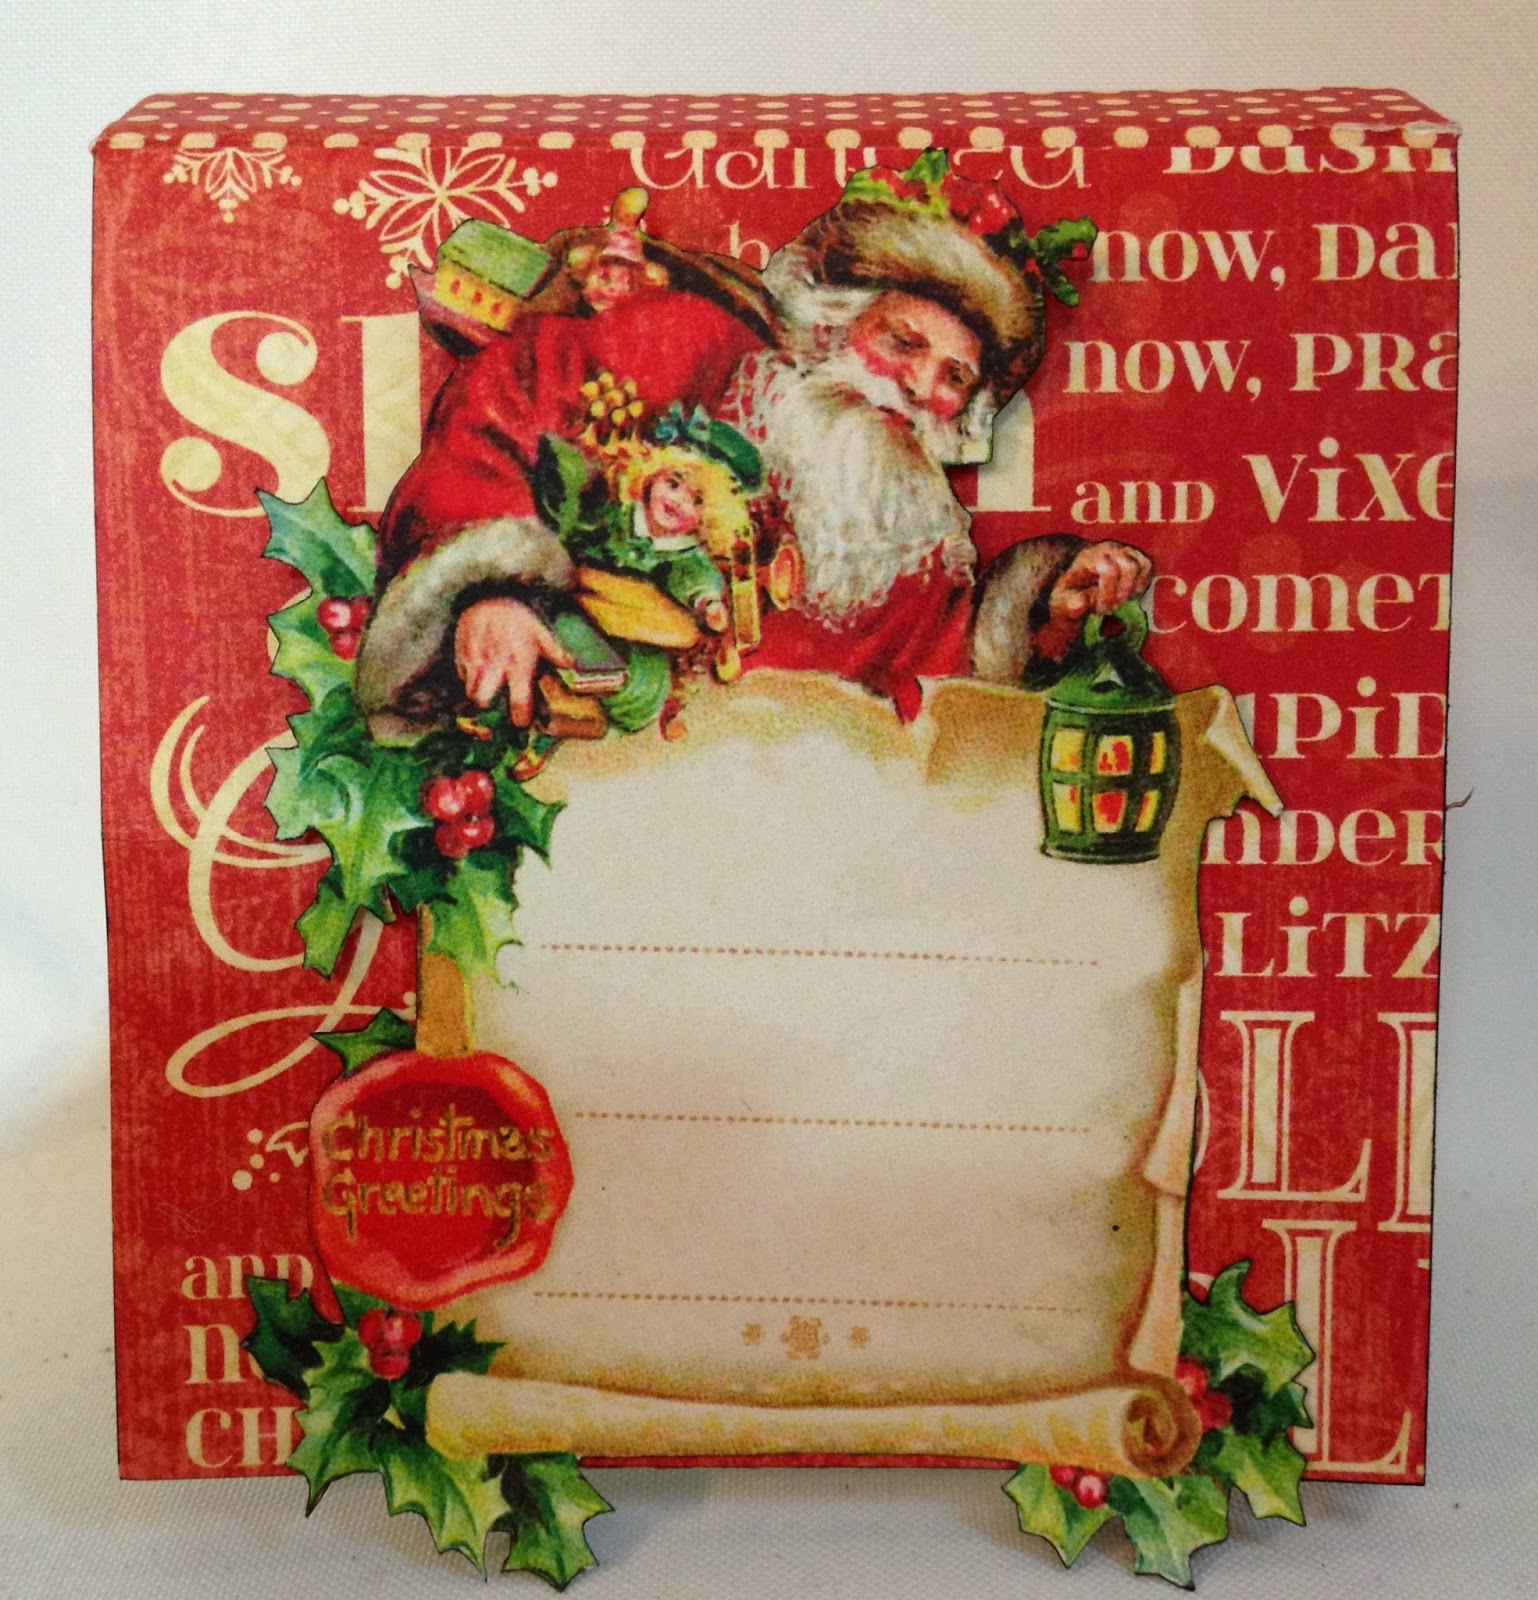 Scrapbook ideas christmas card - Here The Card Is Closed